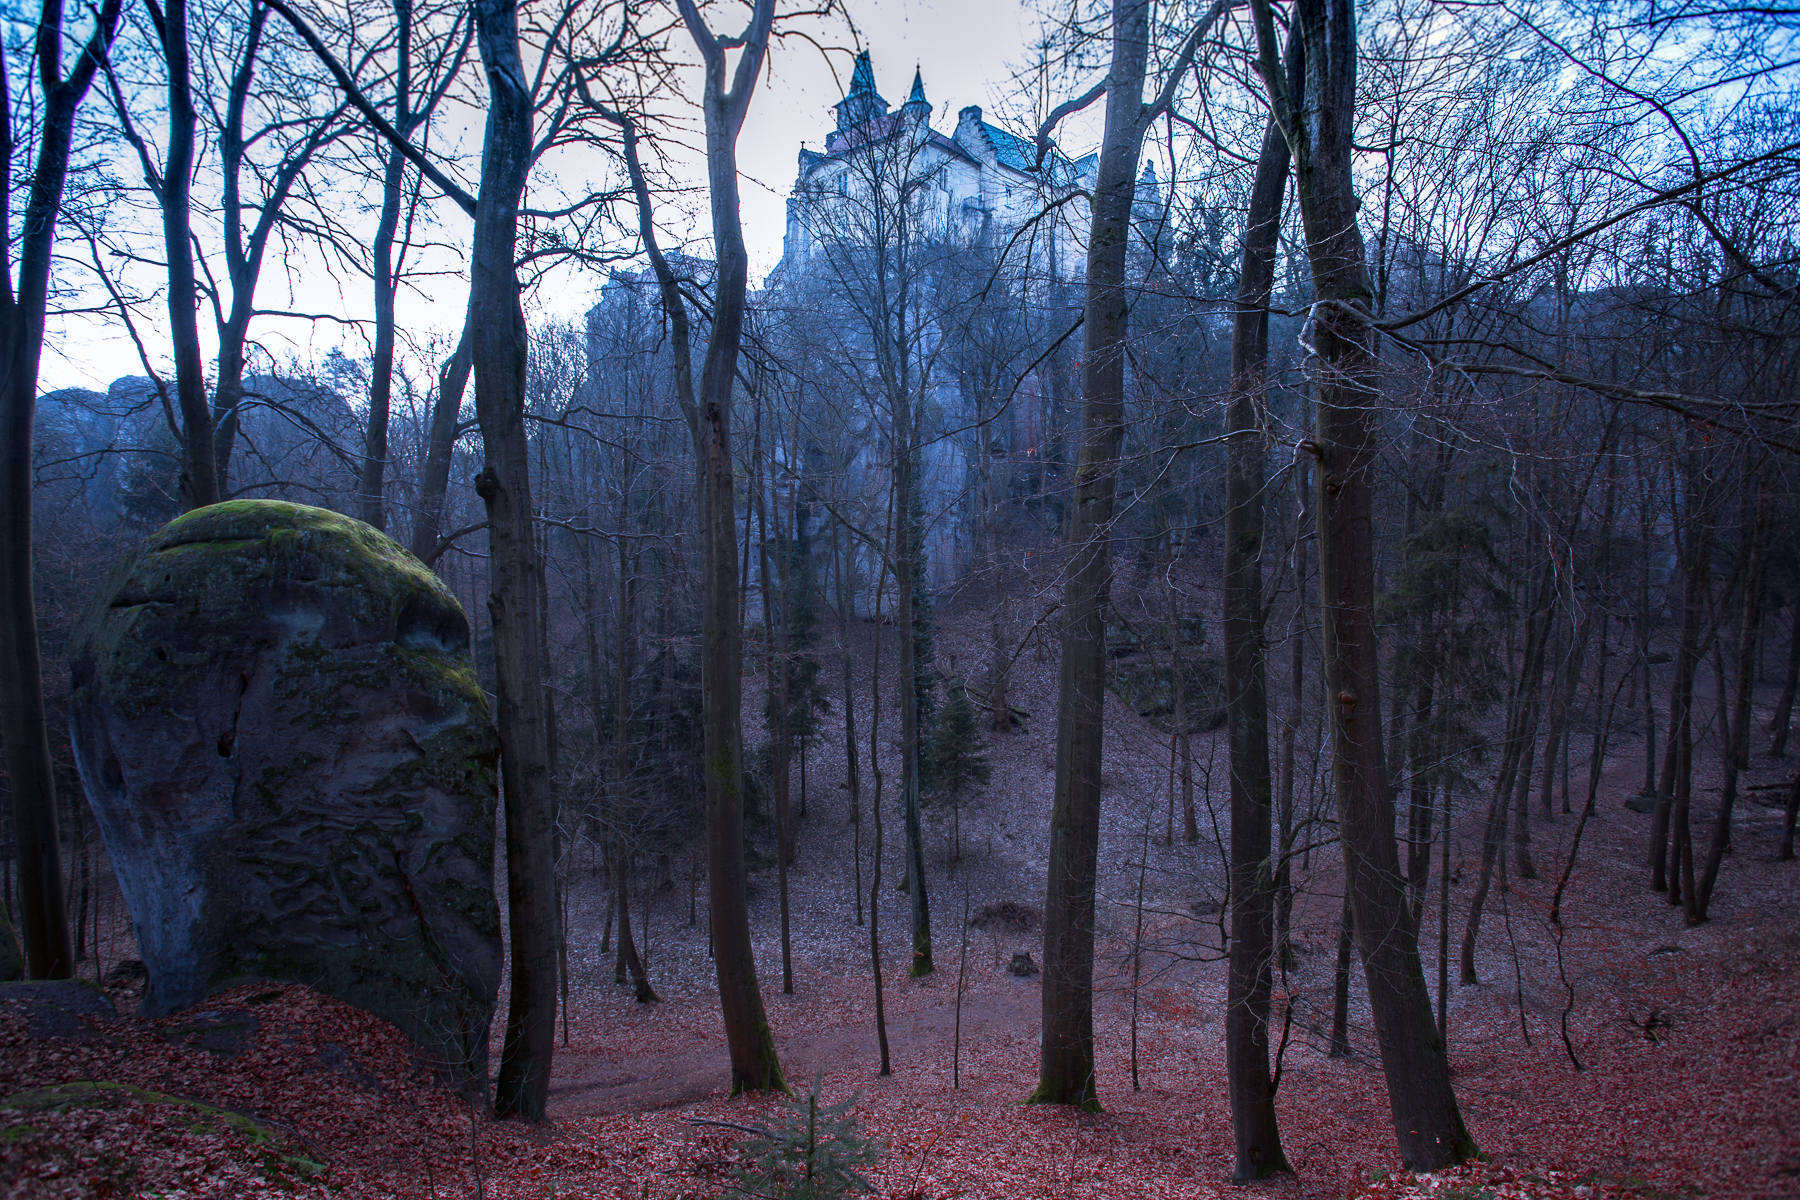 First winter photo workshop in Bohemia for Camera Etrusca. Hruba Skala castle